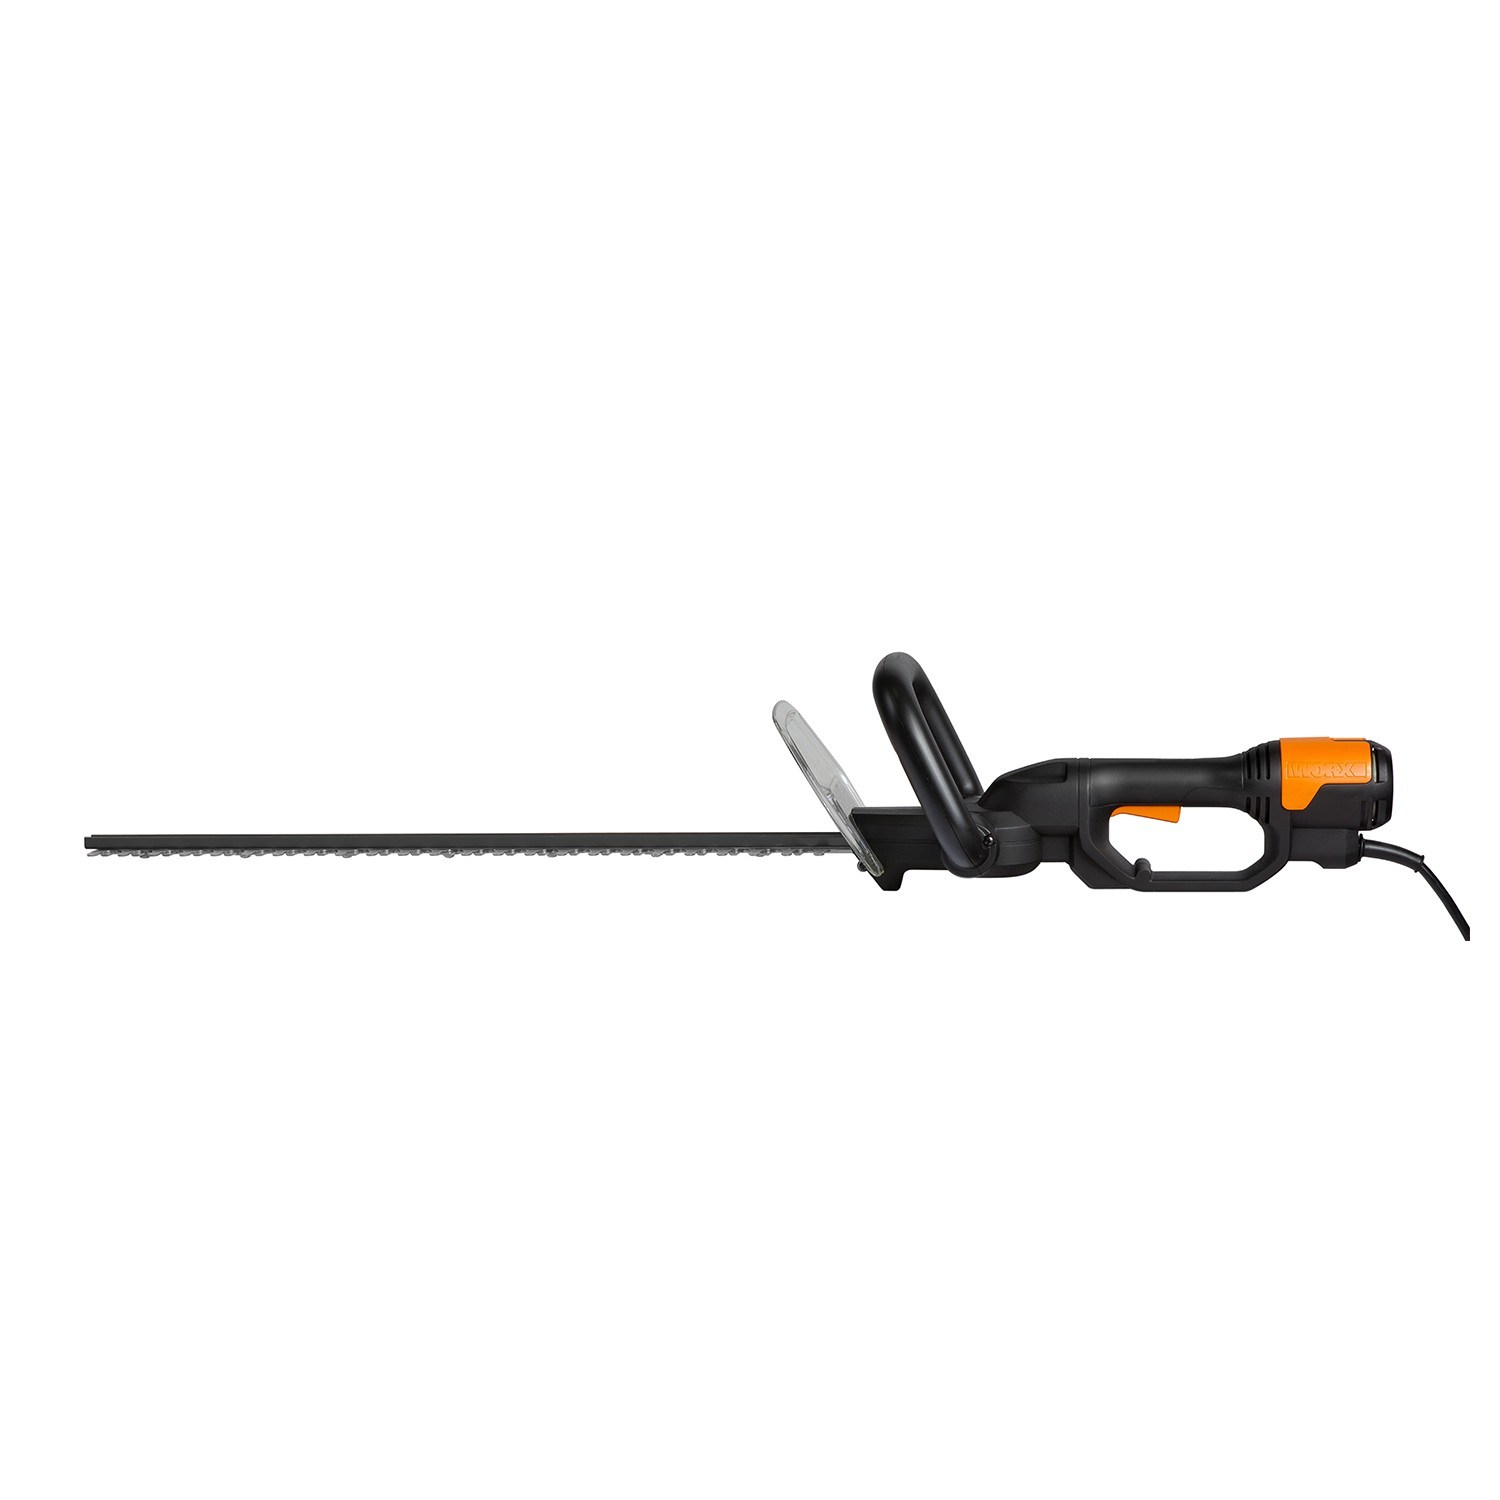 Worx 600W Hedge Trimmer